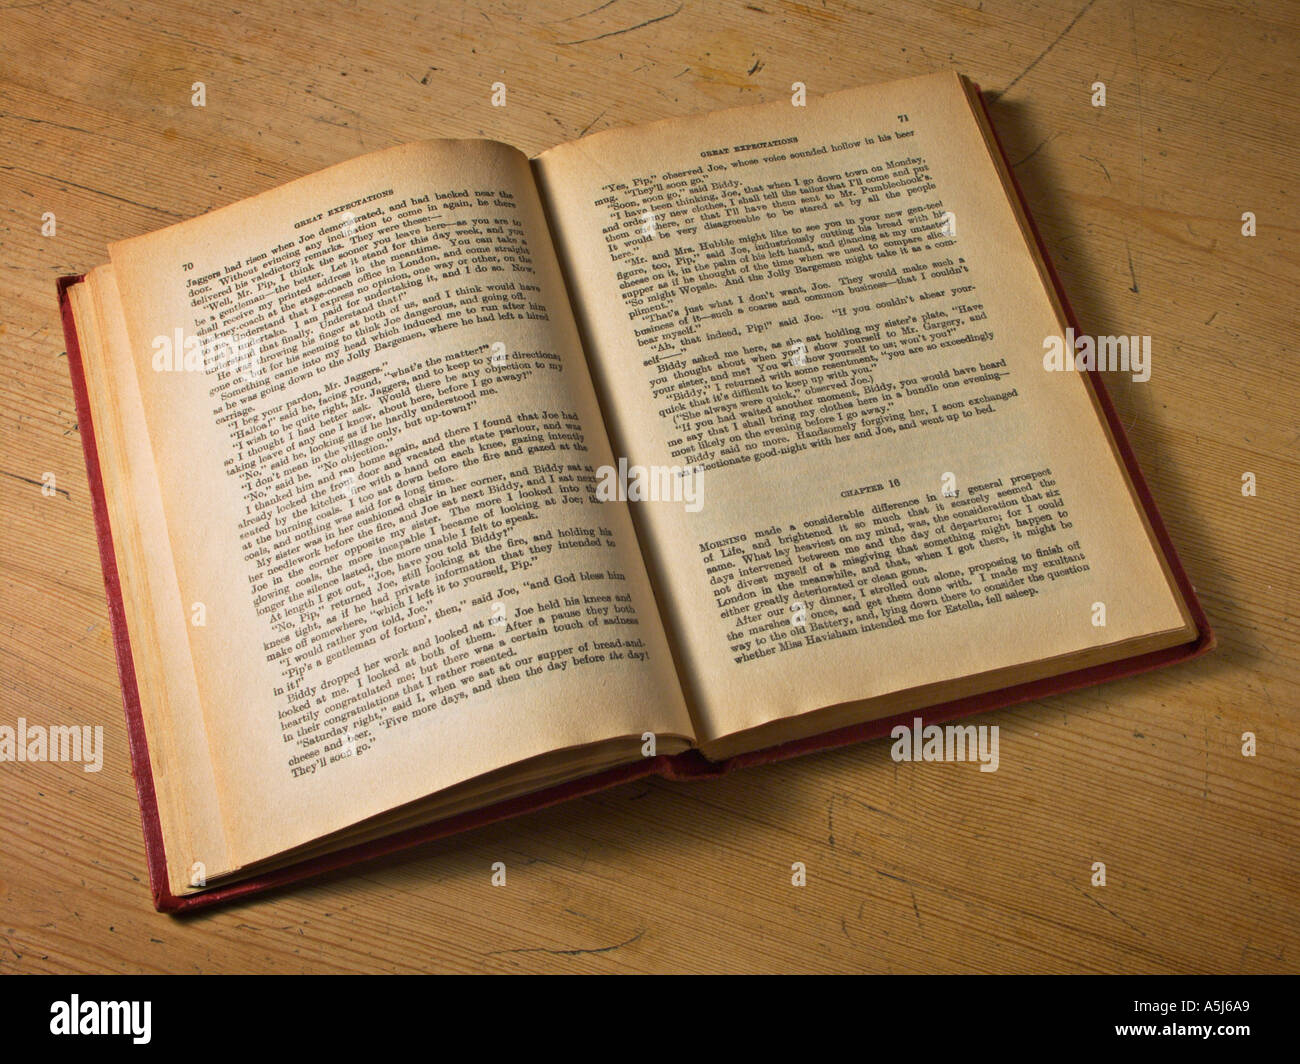 an old book open on a table stock photo 2090664 alamy